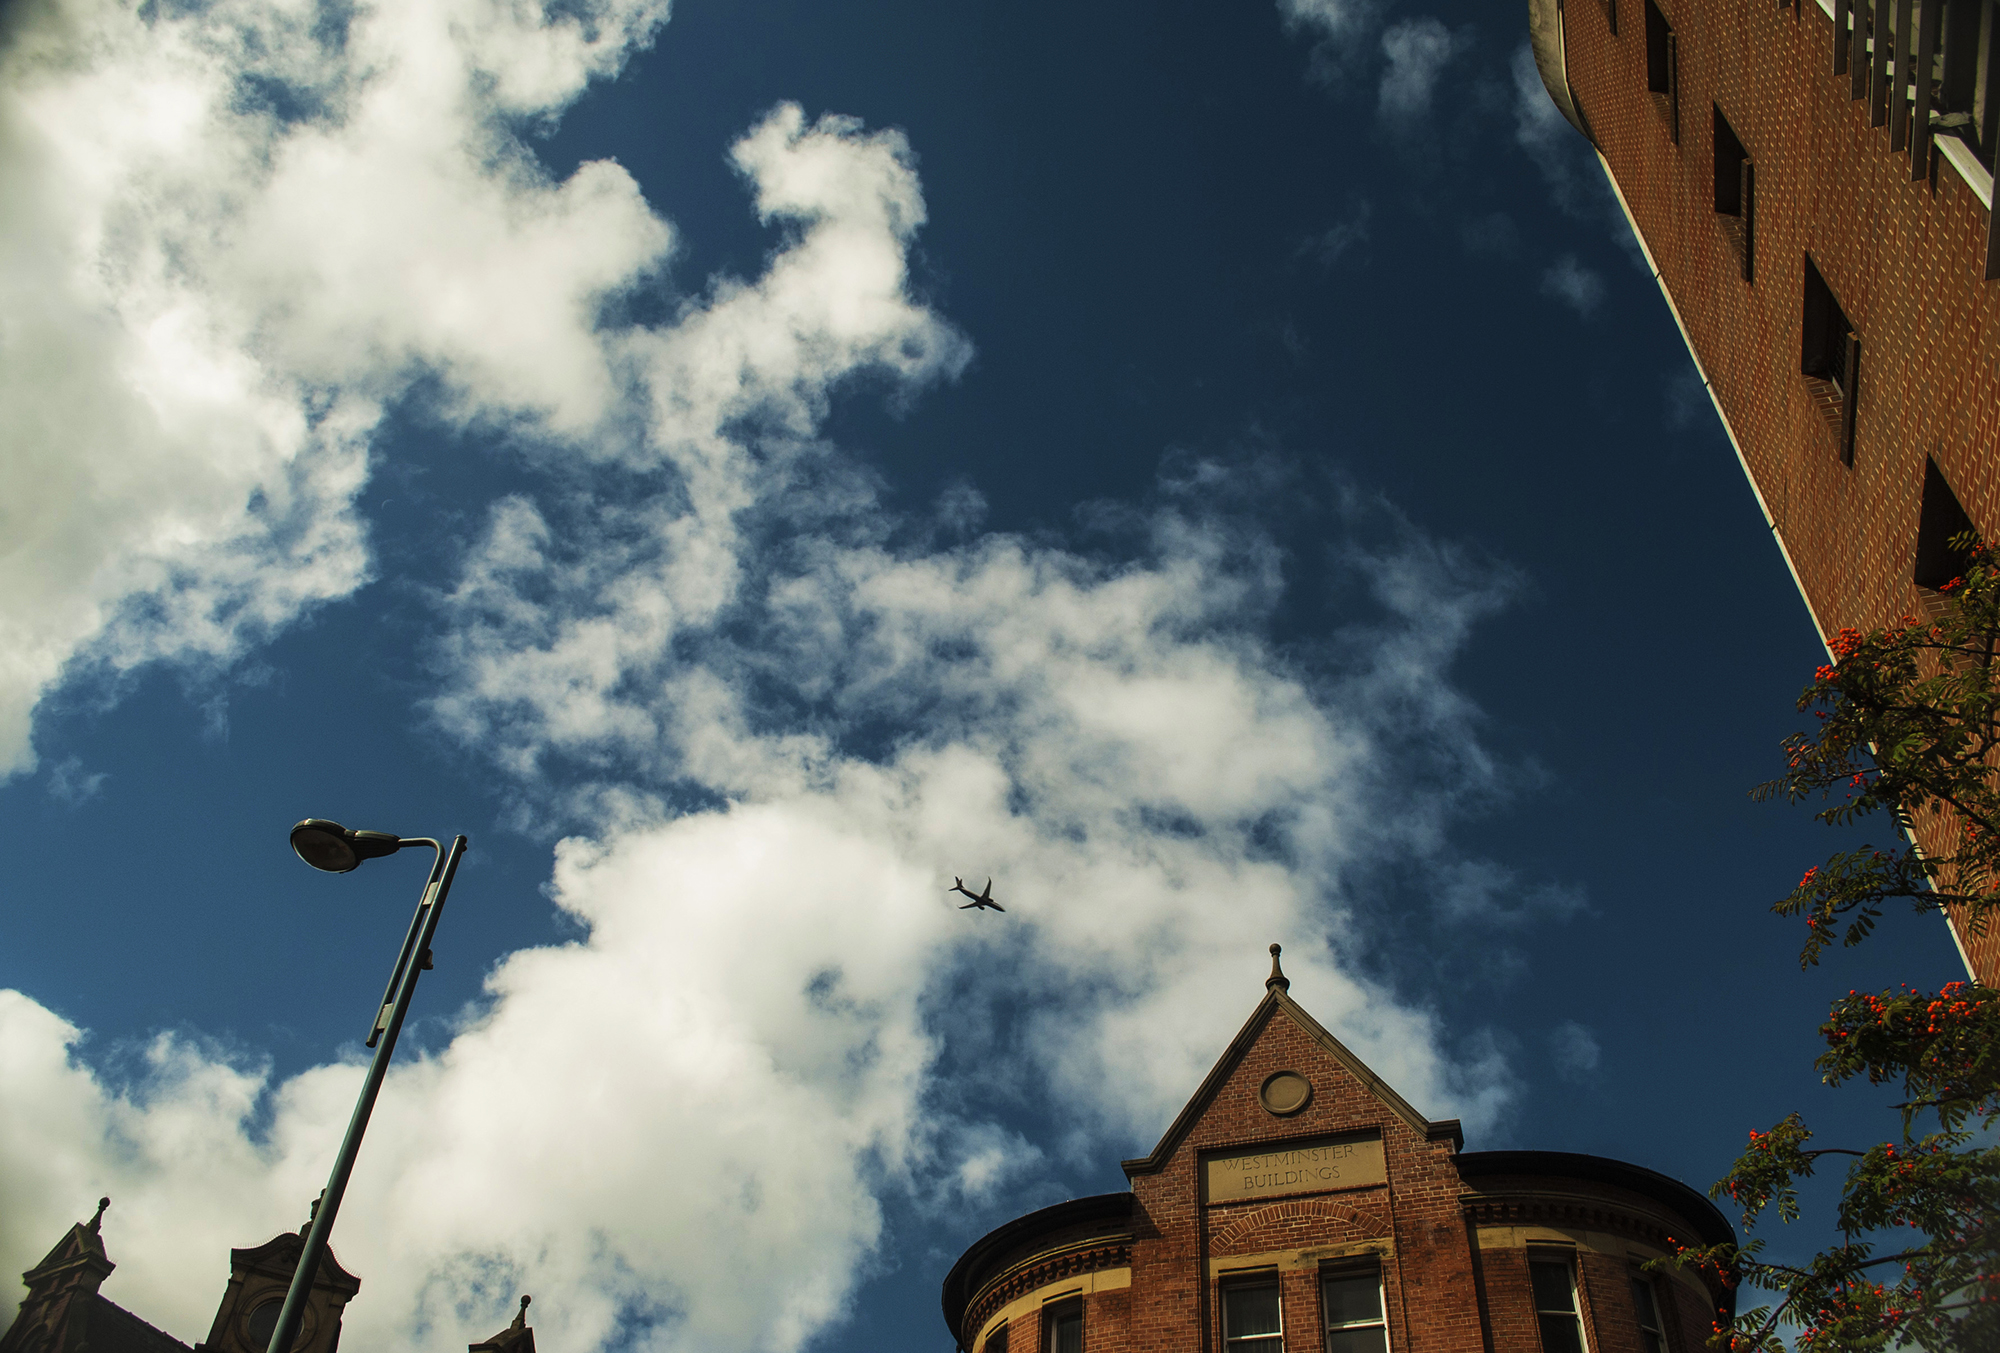 Captured this shot while walking down the streets of Leeds as a plane flies over